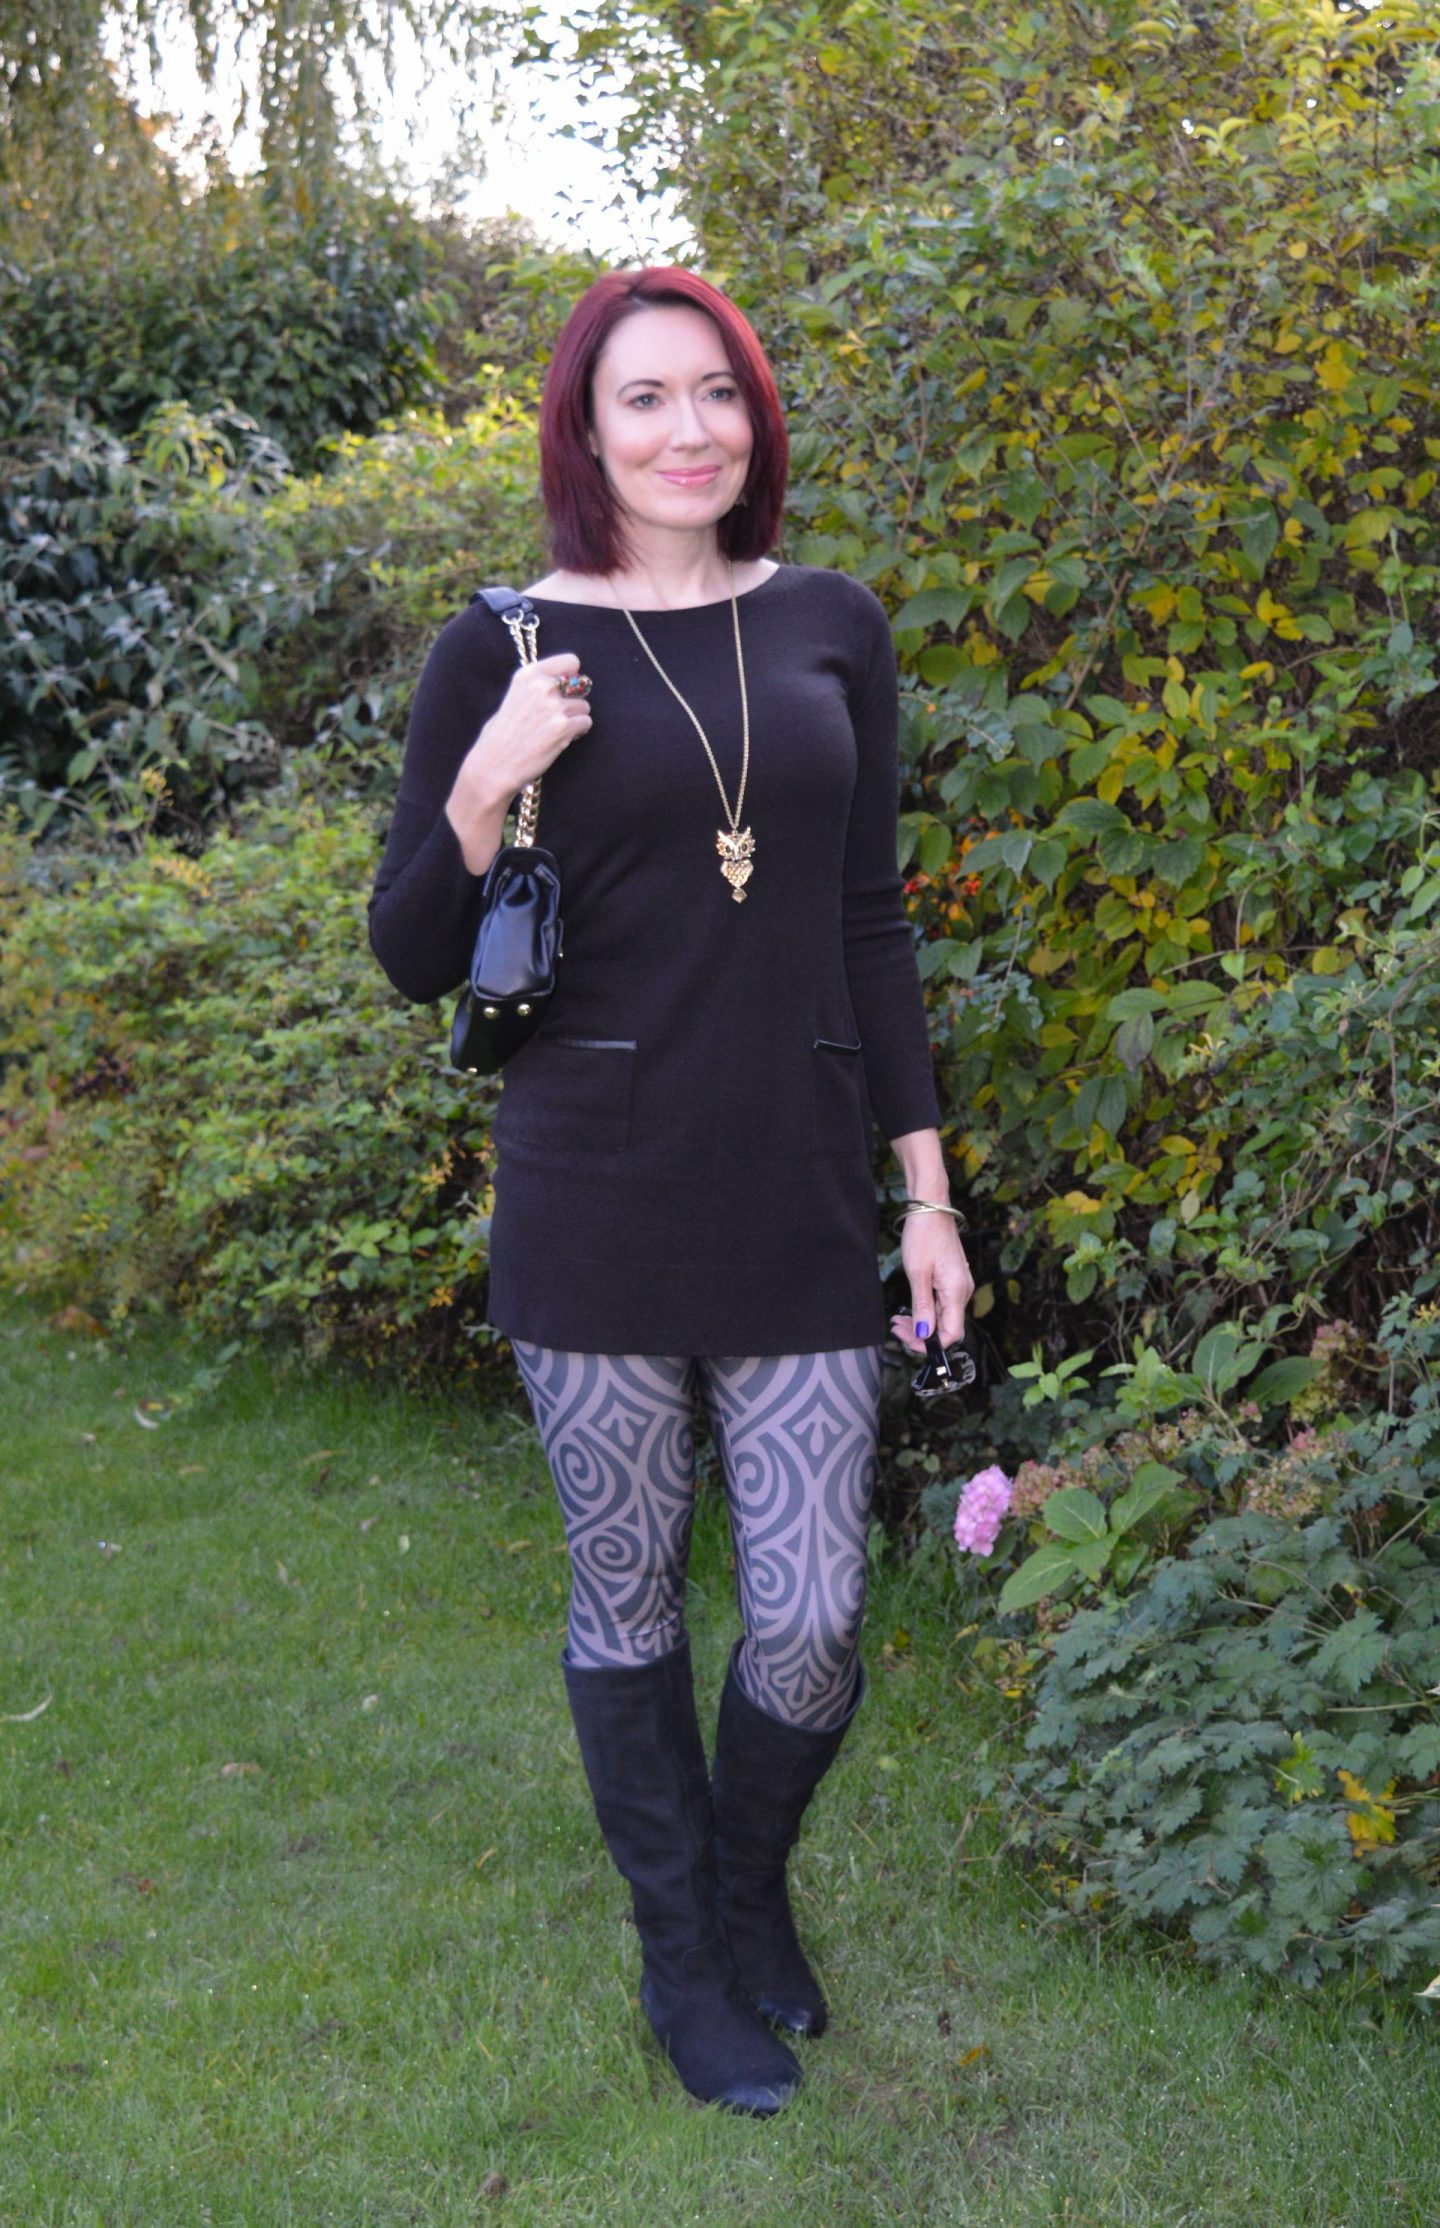 Lovely in Leggings - November Stylish Monday link up, Meadowlark leggings